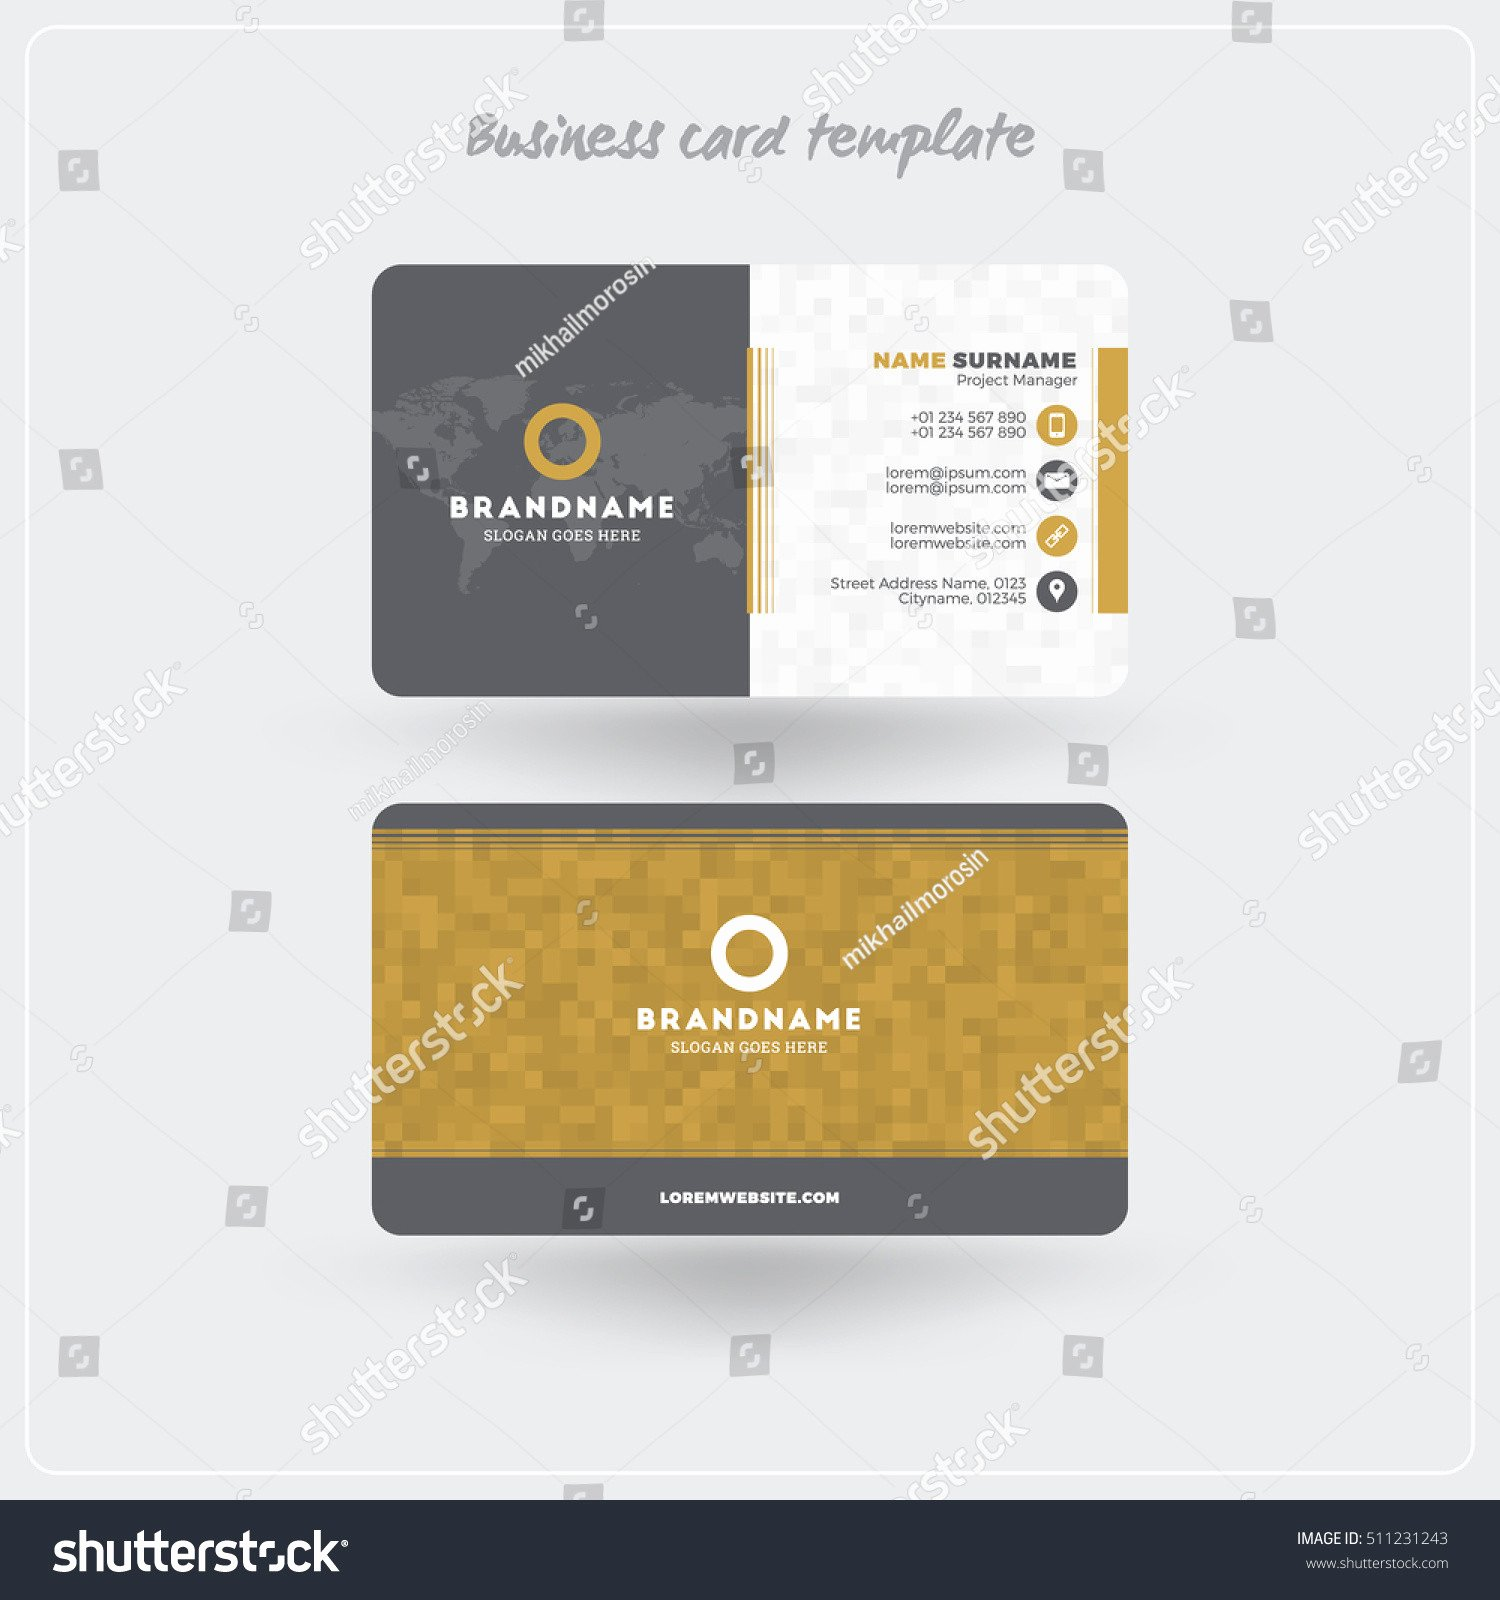 Rounded Business Cards Template Unique Business Card Rounded Corners Template Elegant Rounded